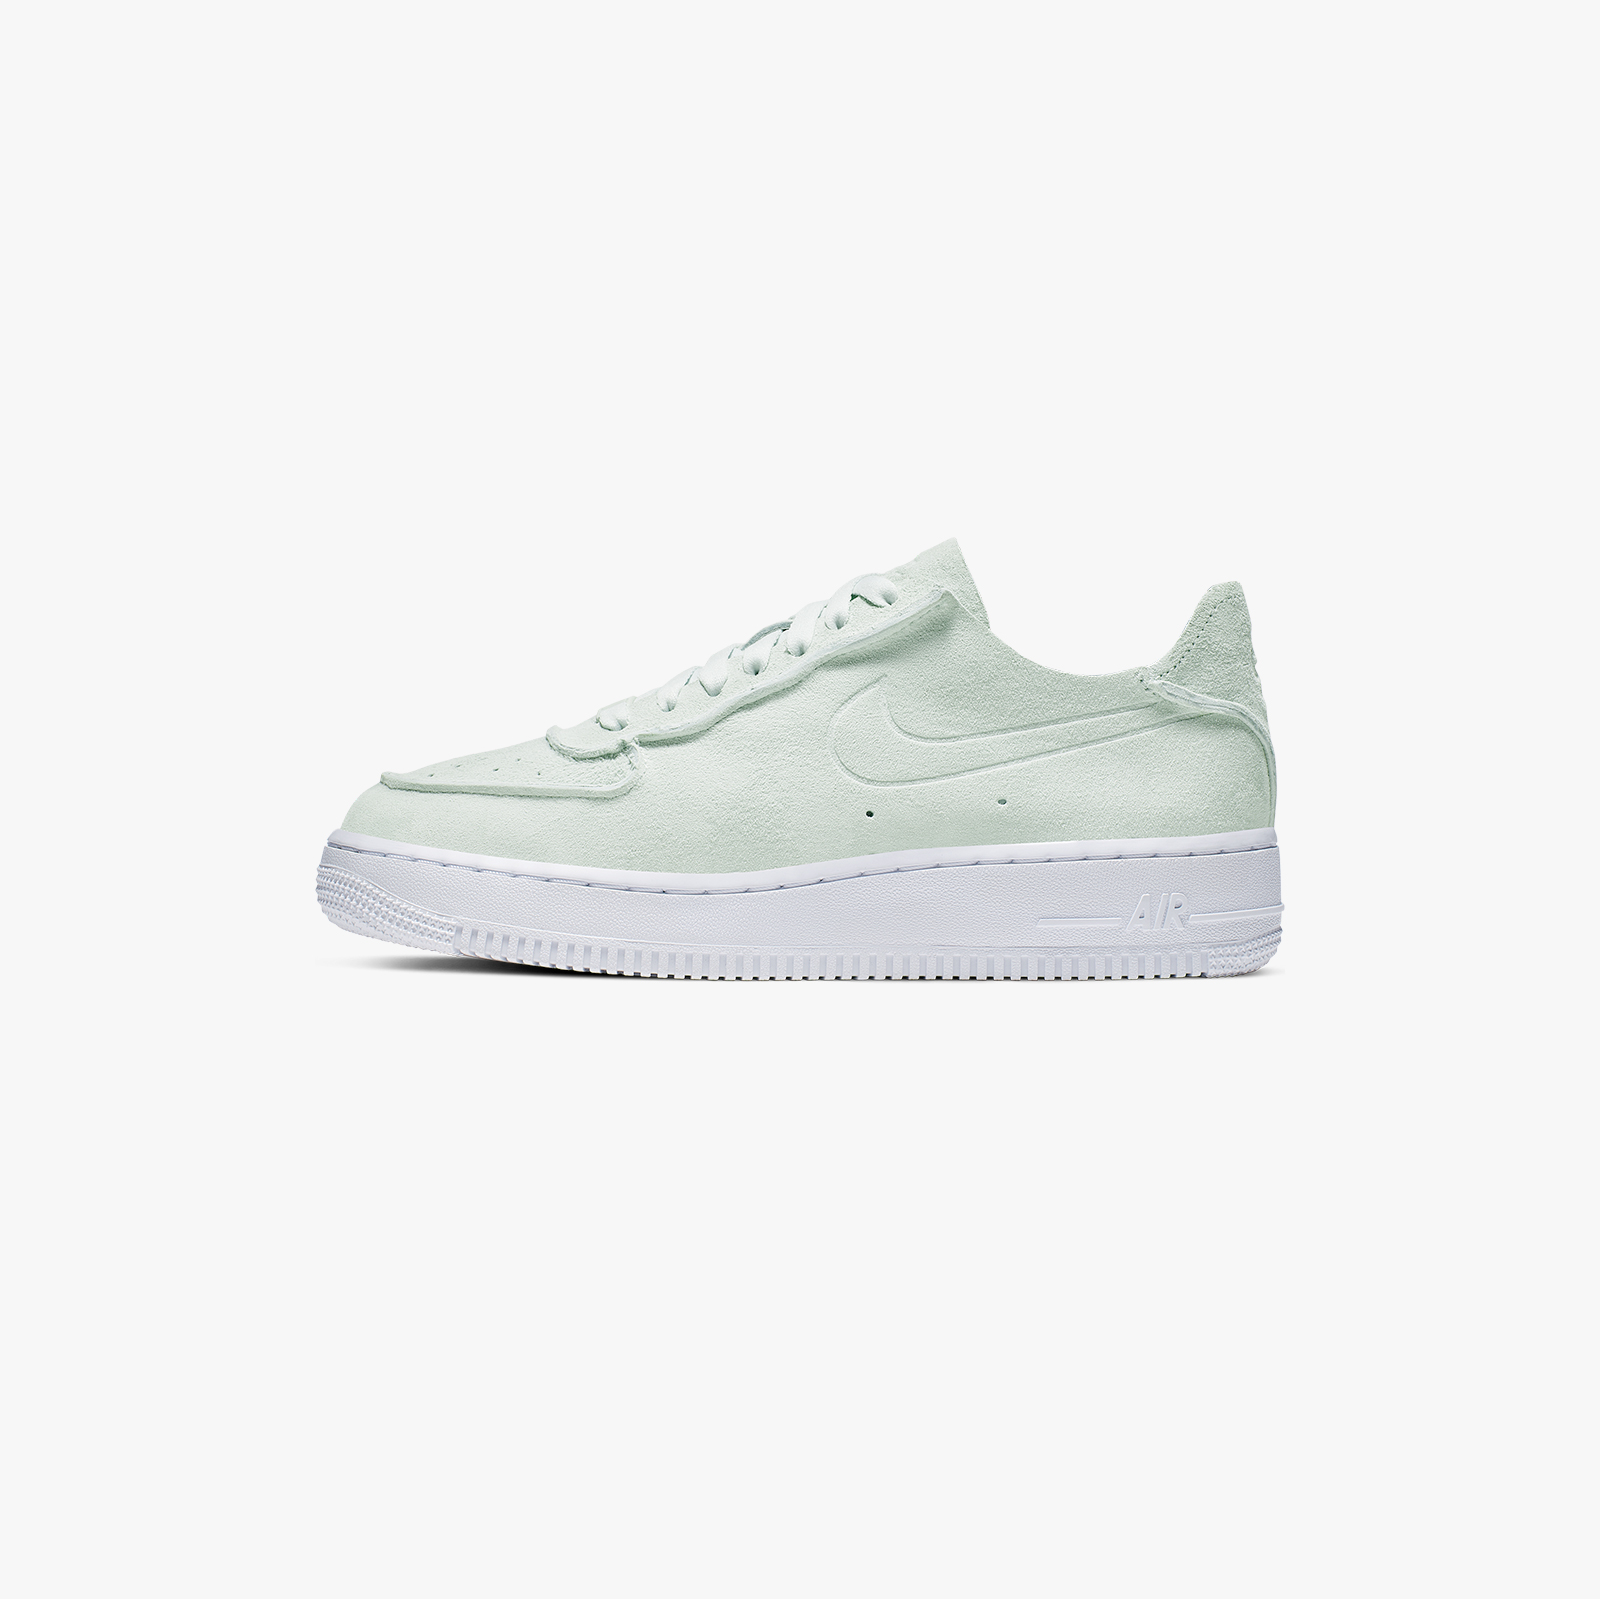 Nike Air Force 1 07 Deconstructed